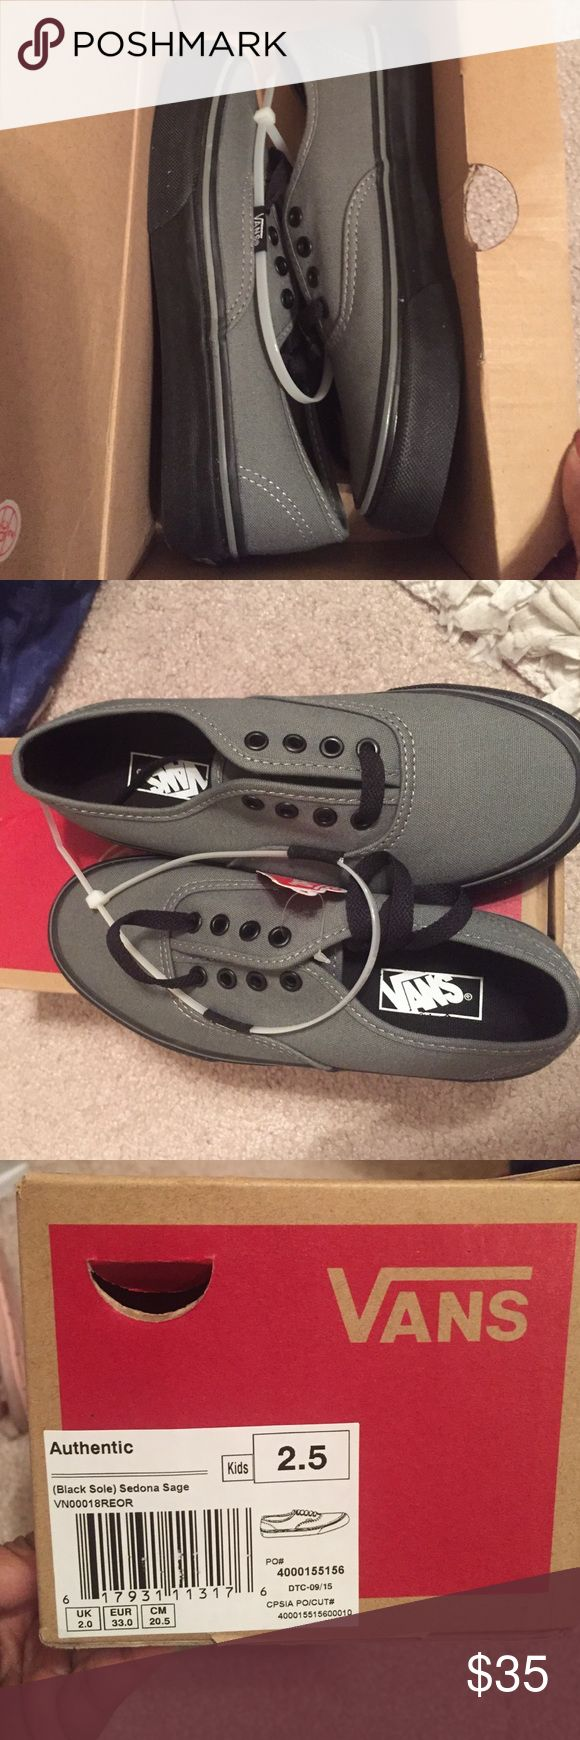 Authentic vans boys 2.5 Nice gray and black vans for boys size 2.5. New with tags Vans Shoes Sneakers